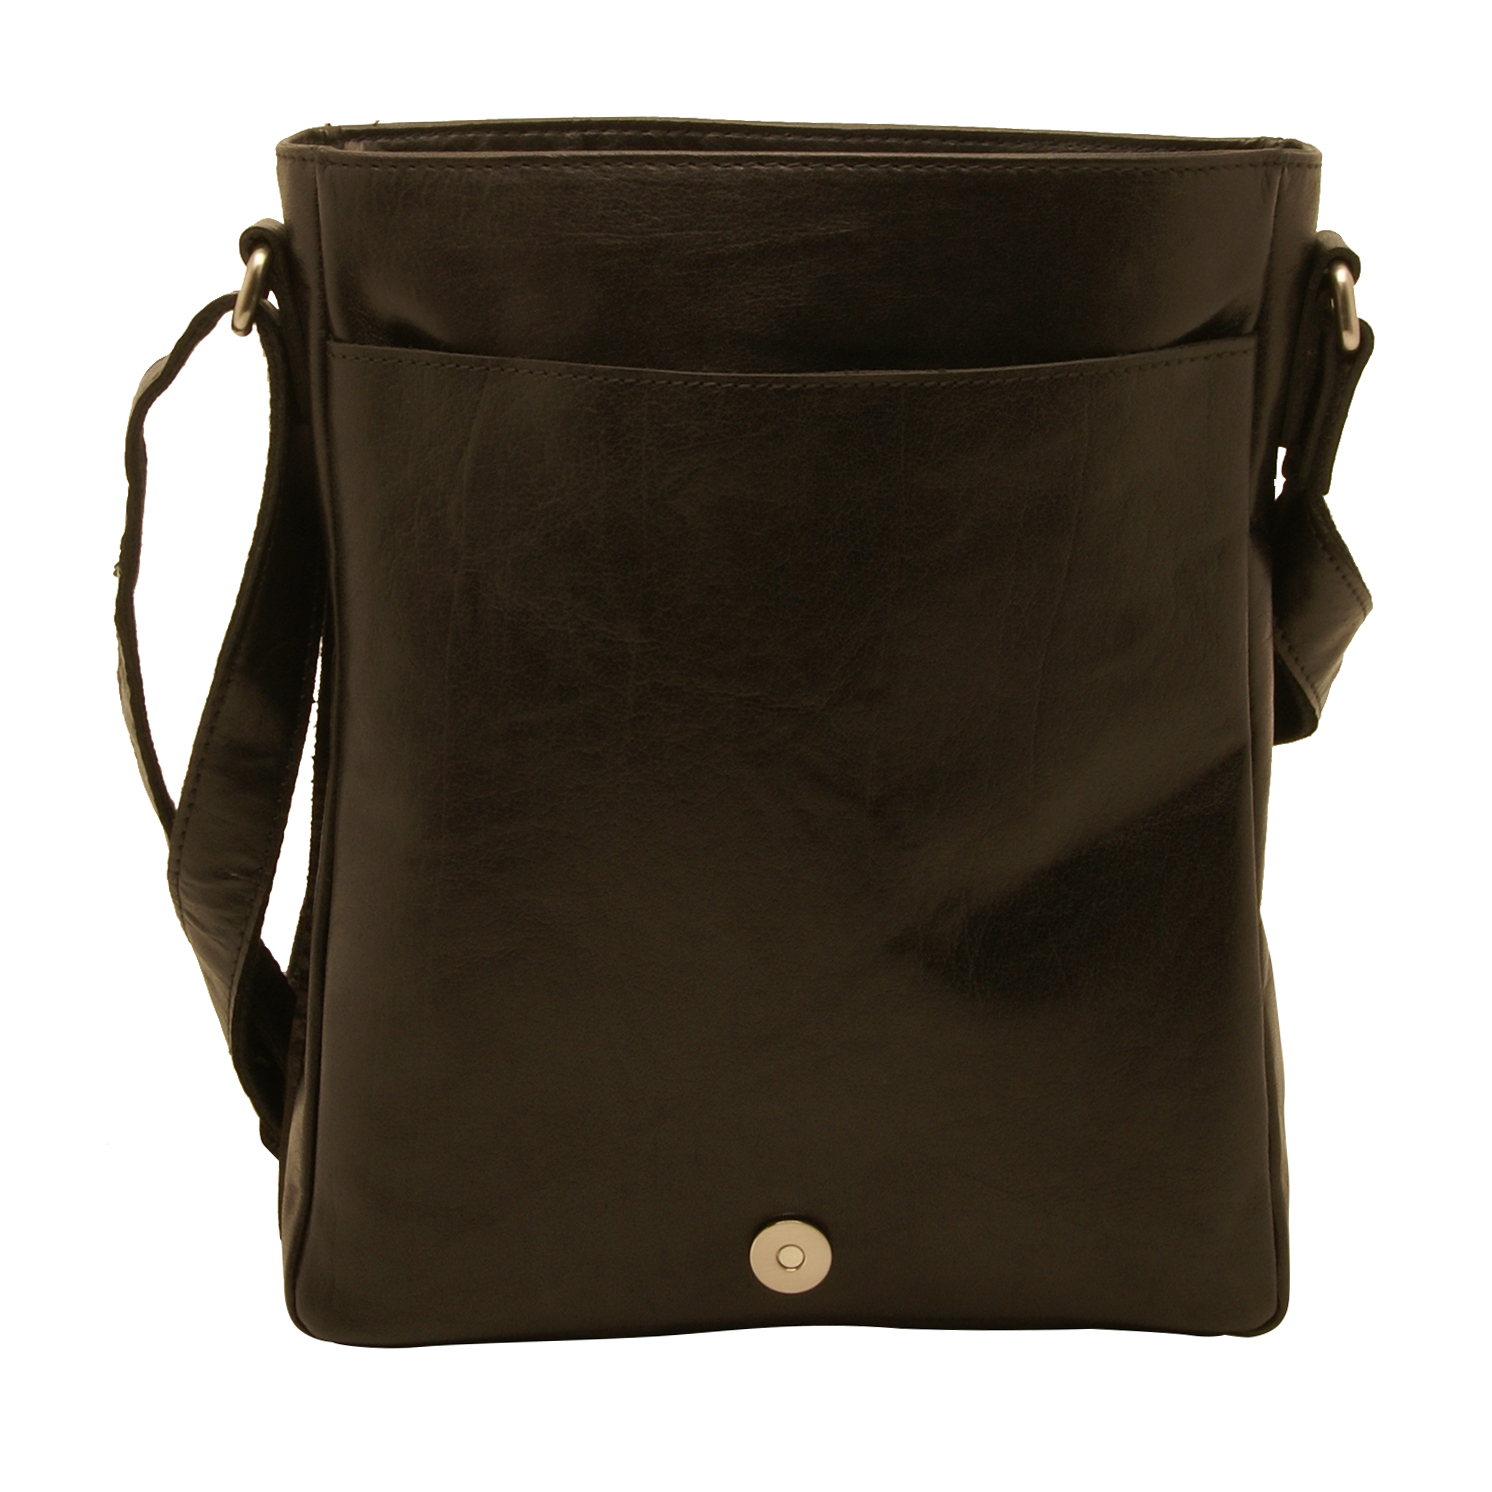 Rowallan – Black North/South Conquest Messenger Bag in Pull Up Cowhide Leather